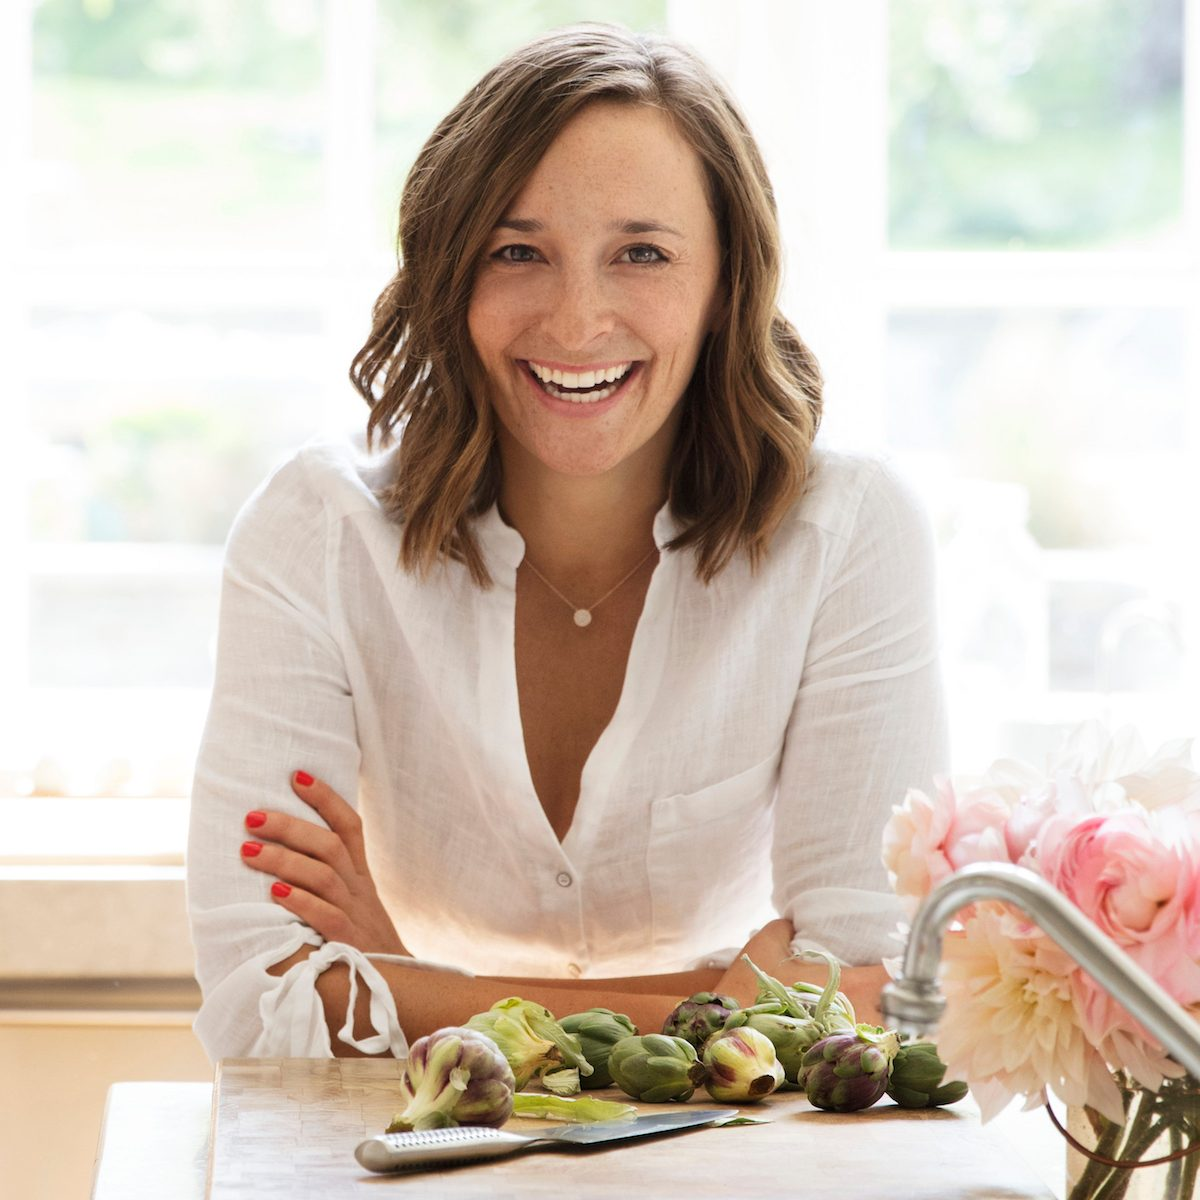 Gaby Dalkin, host of the What's Gaby Cooking? podcast